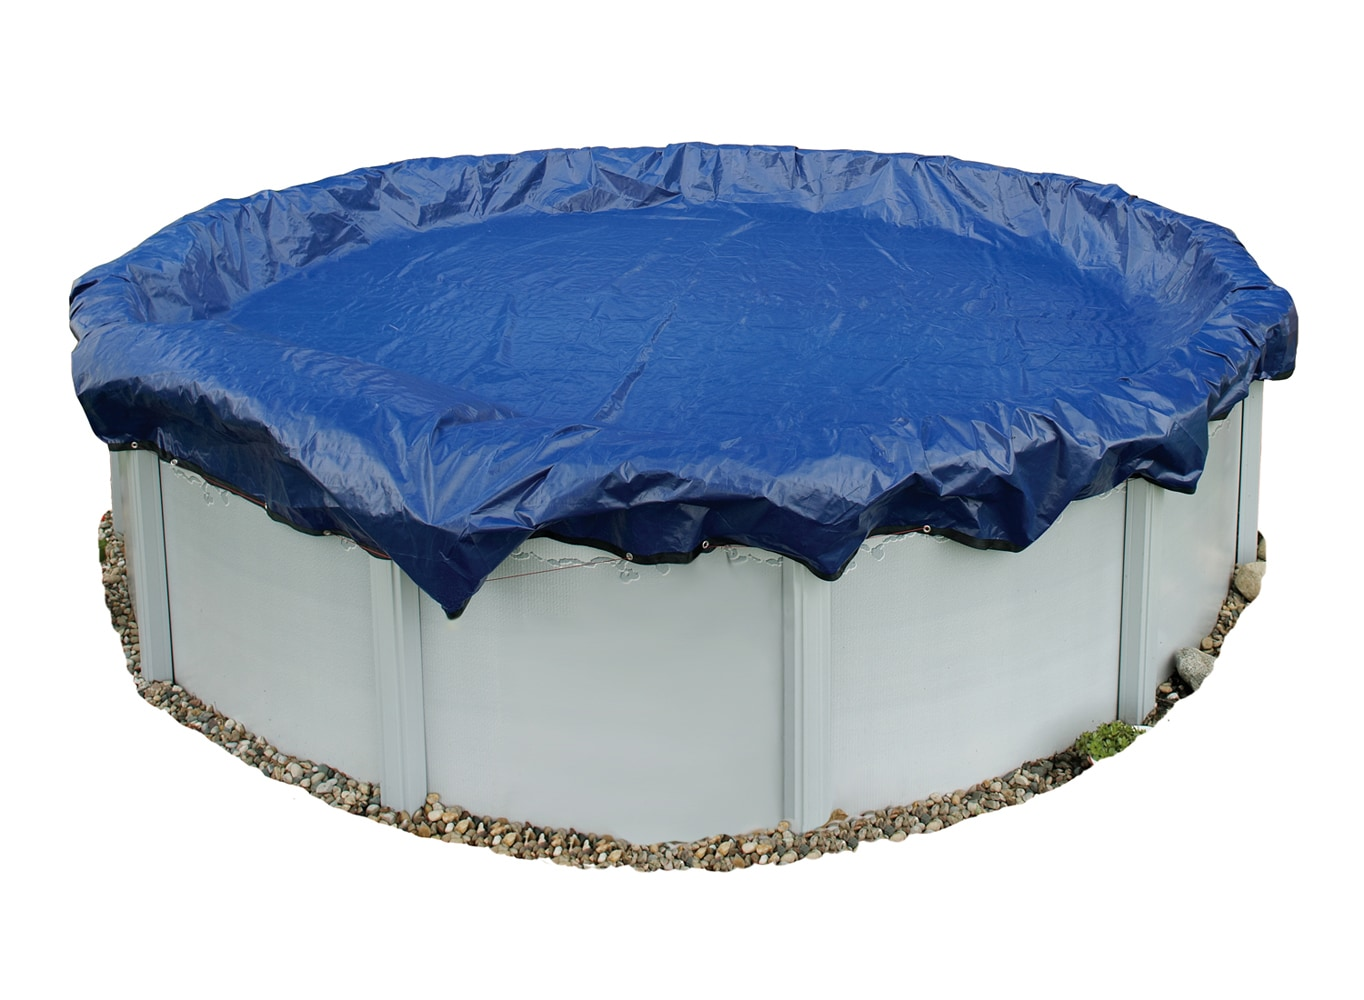 Blue Wave Gold Series Round Above Ground Winter Pool Cover